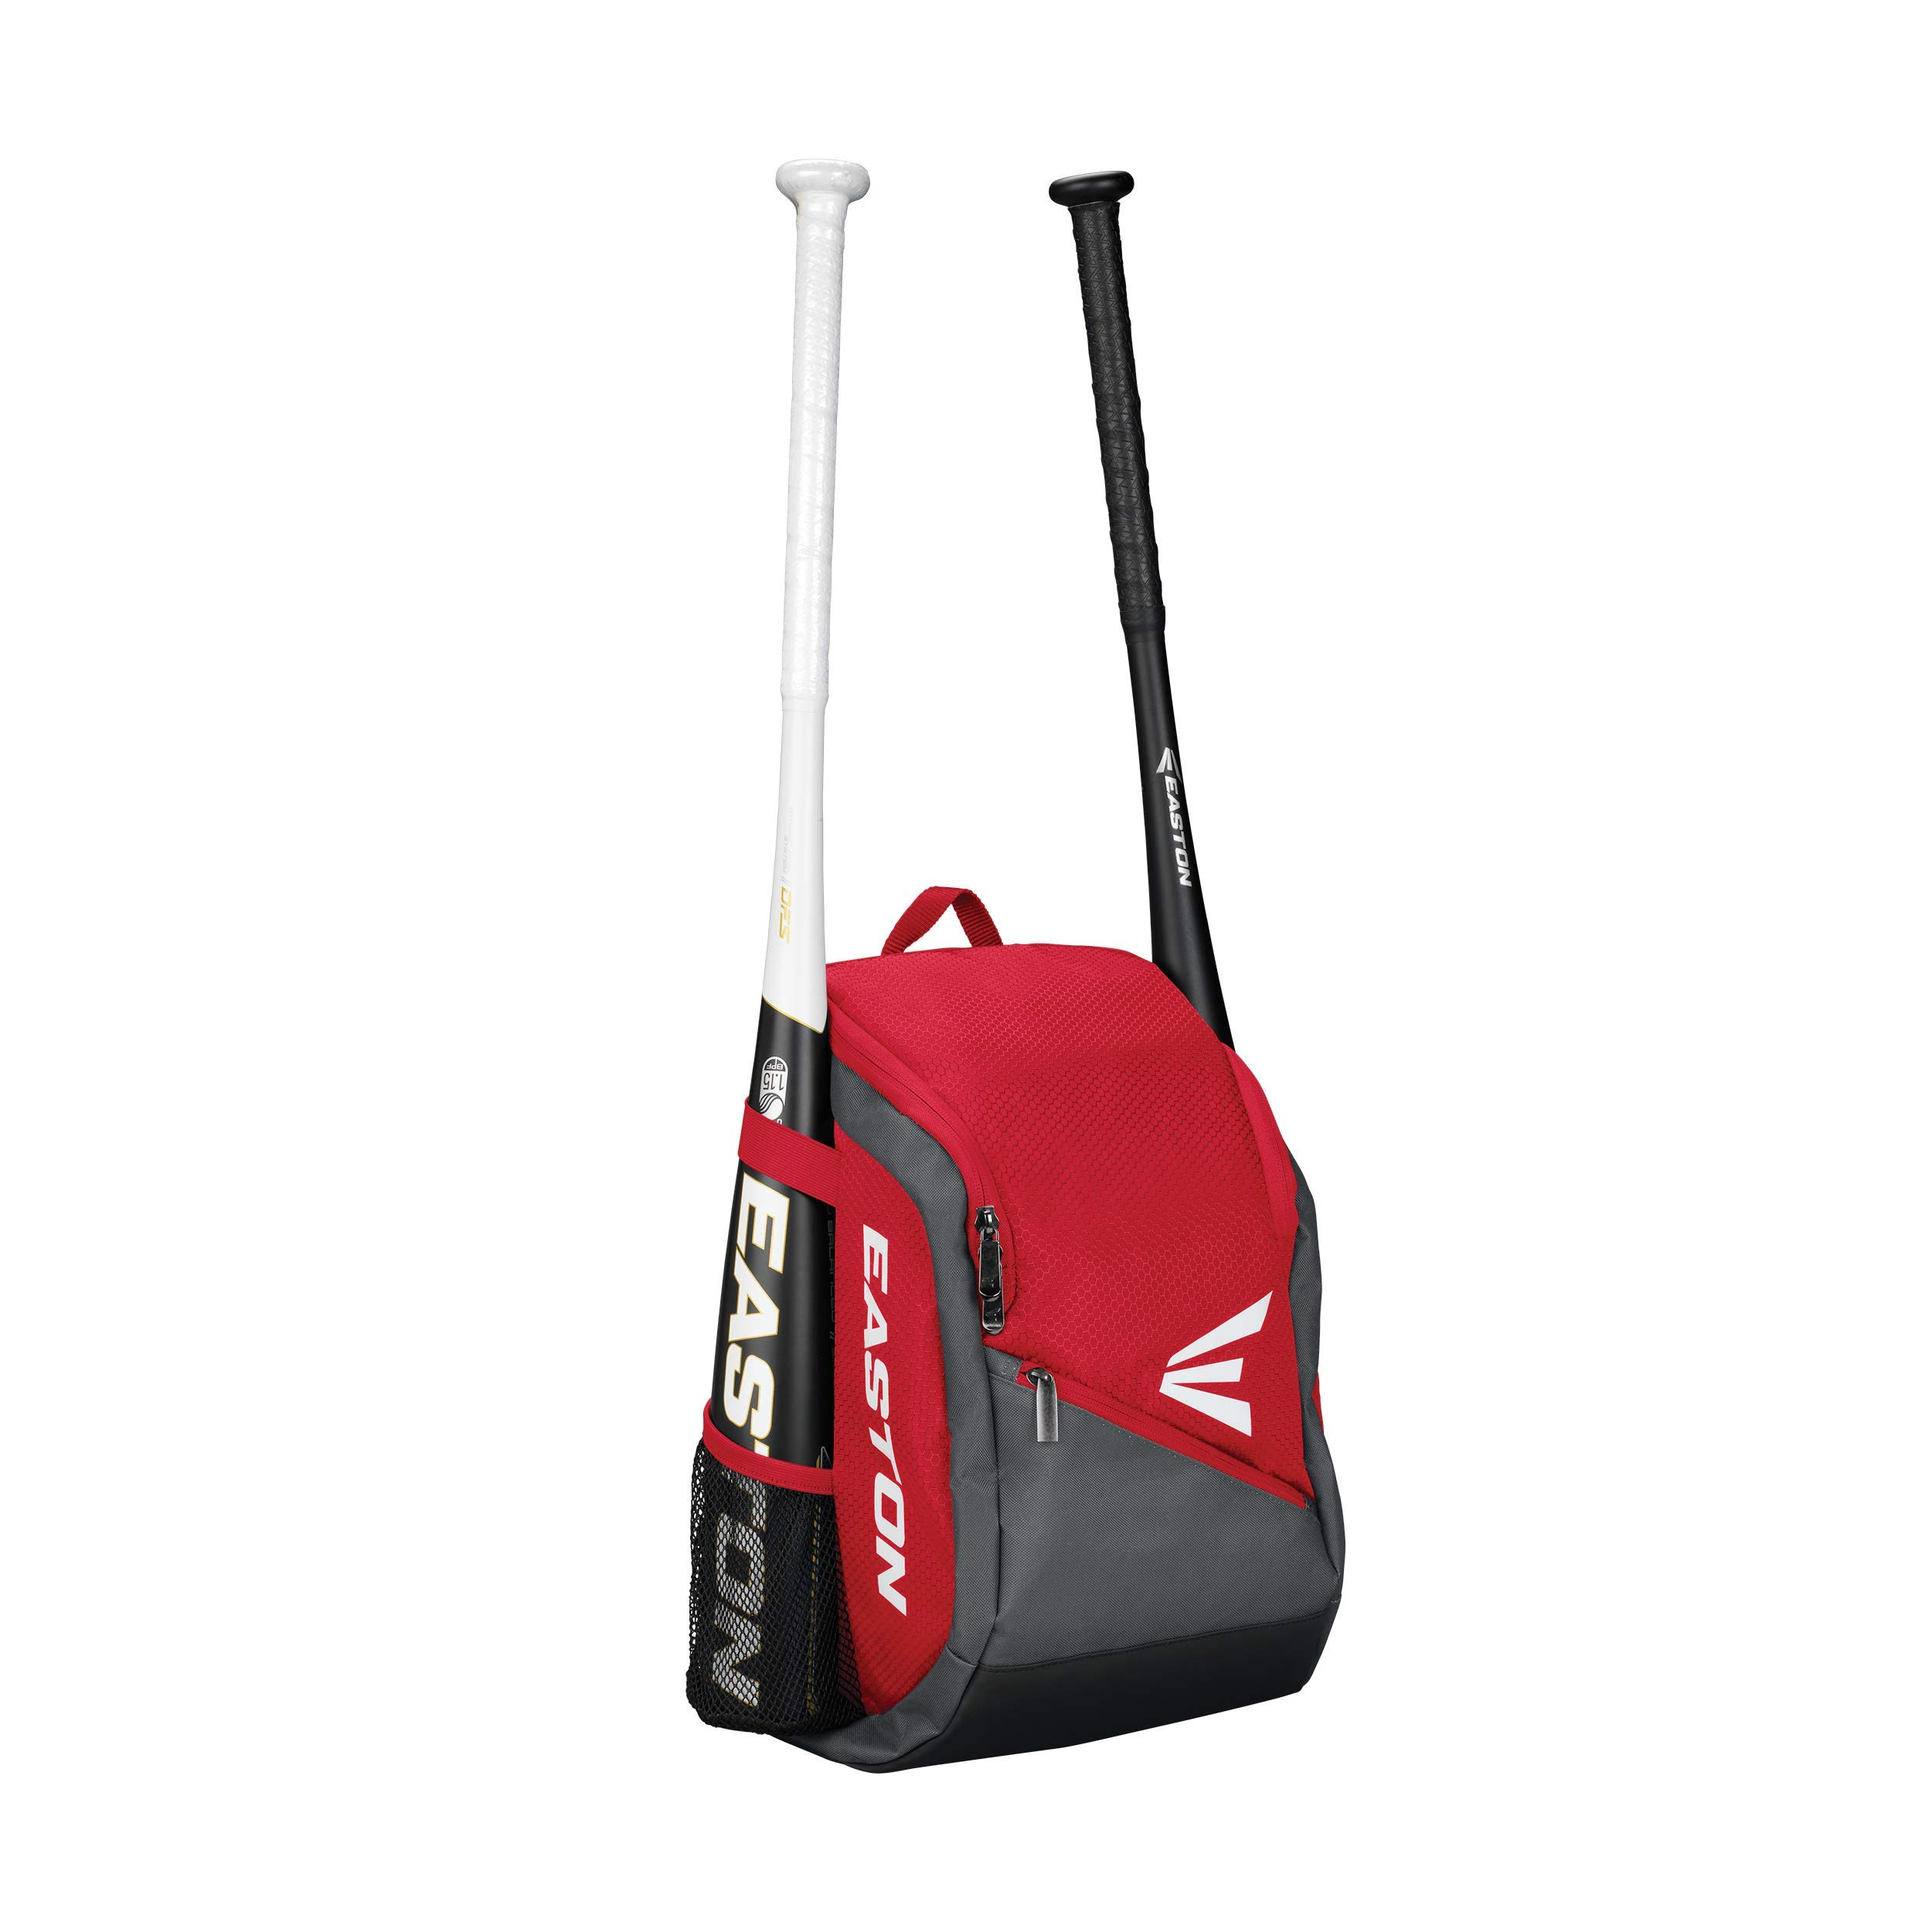 EASTON GAME READY Youth Bat & Equipment Backpack Bag | Baseball Softball | 2019 | Red | 2 Bat Pockets | Vented Main Compartment | Vented Shoe Pocket | Valuables Pocket | Fence Hook by Easton